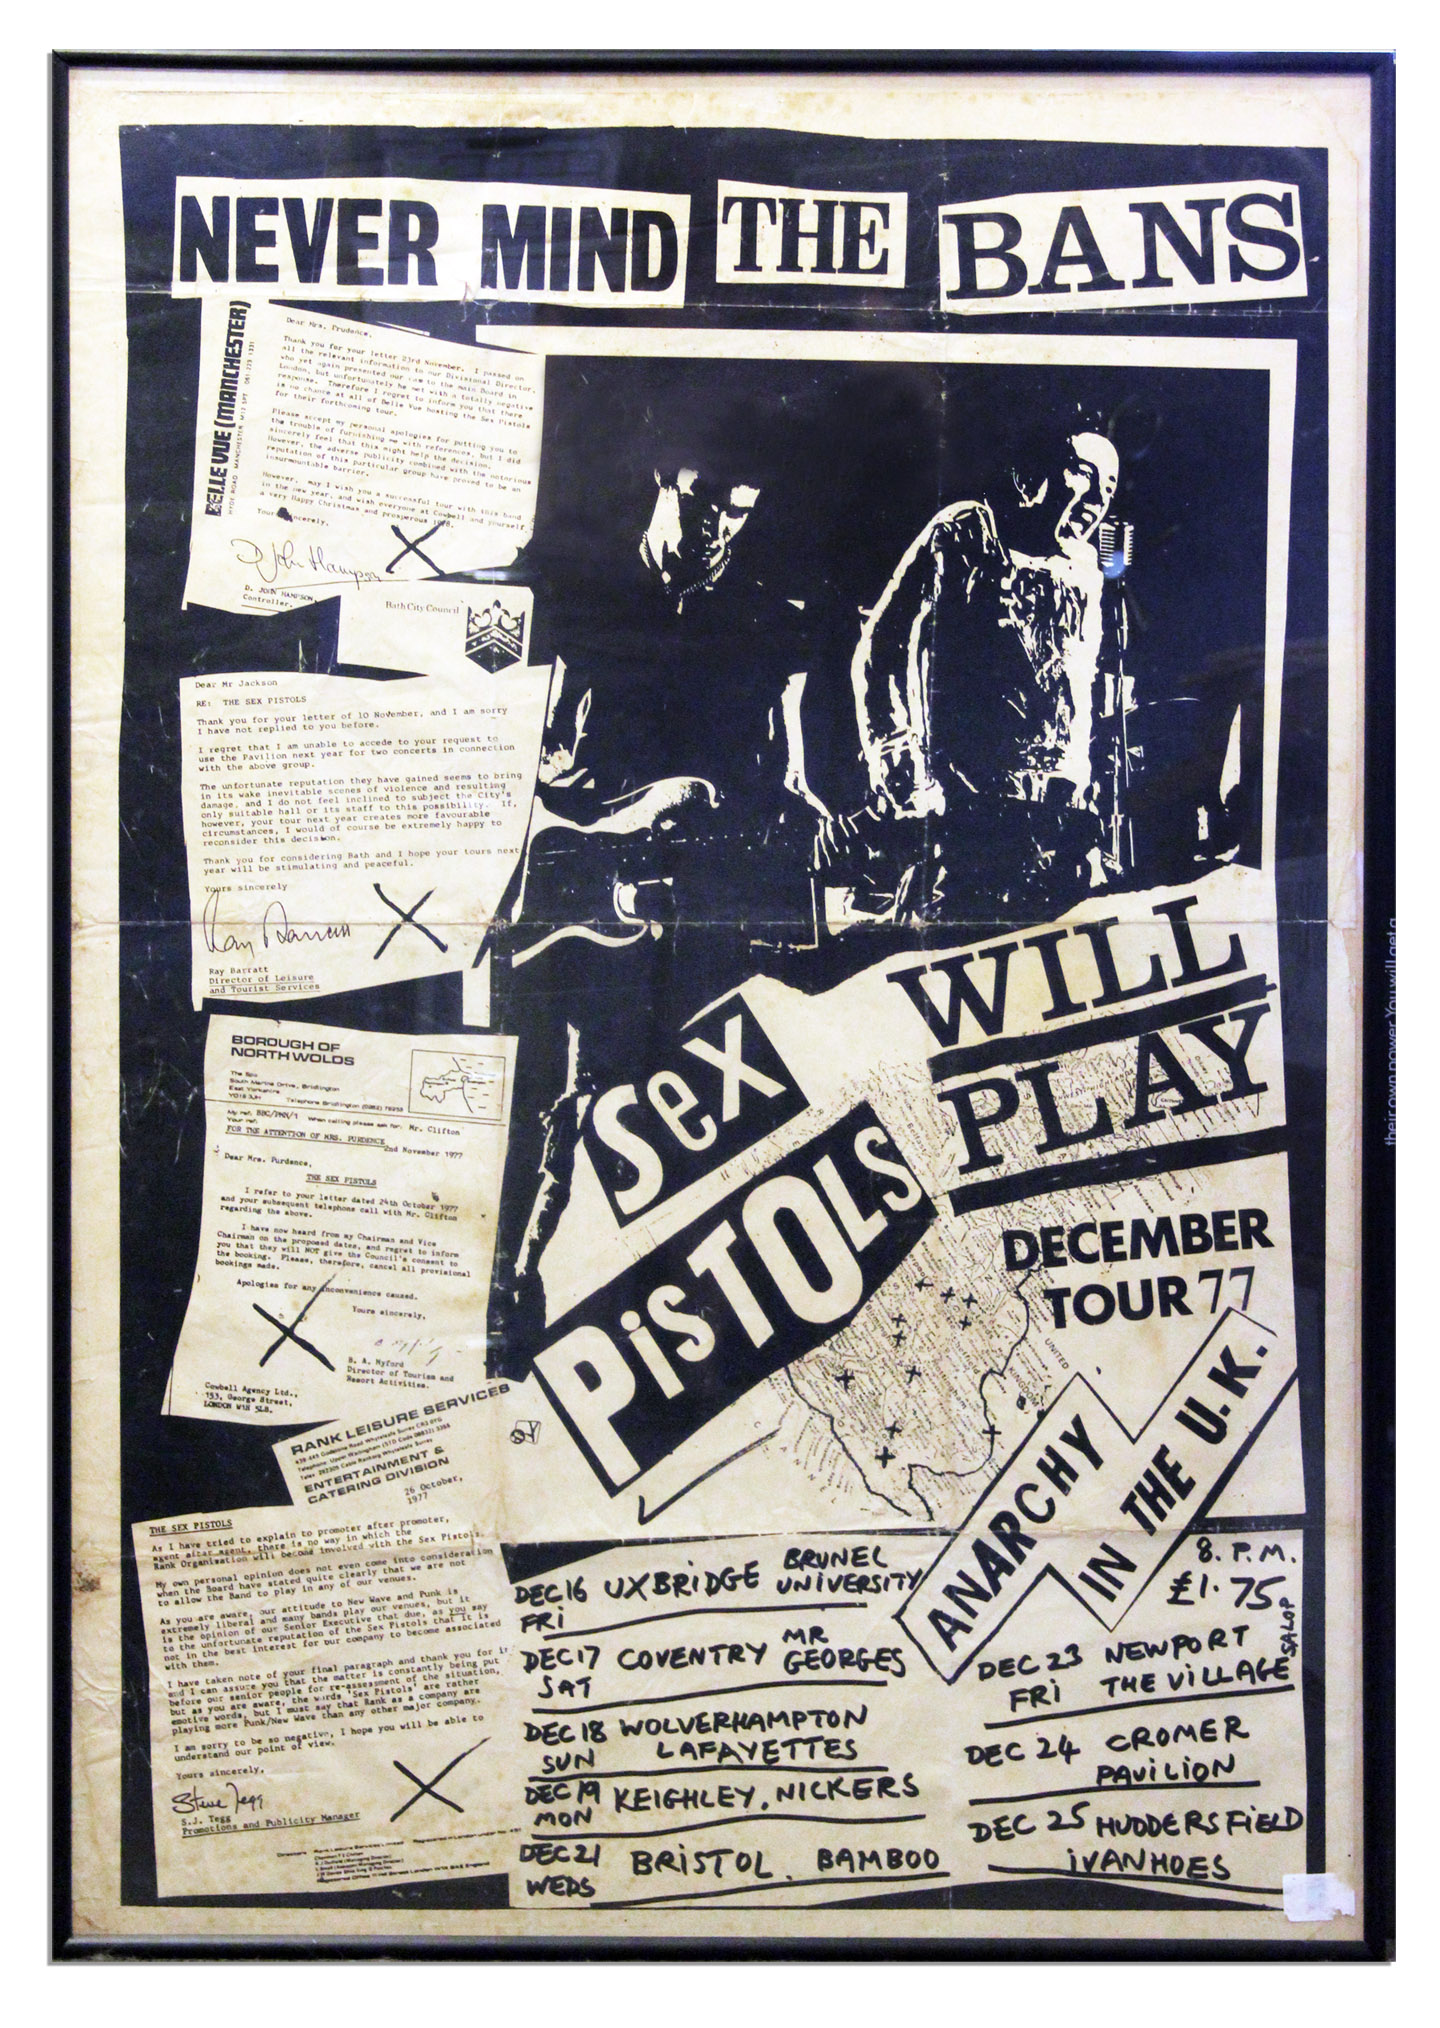 Scarce Sex Pistols Poster for Their Final Tour in the UK -- Poster Full of Quotes by Venues